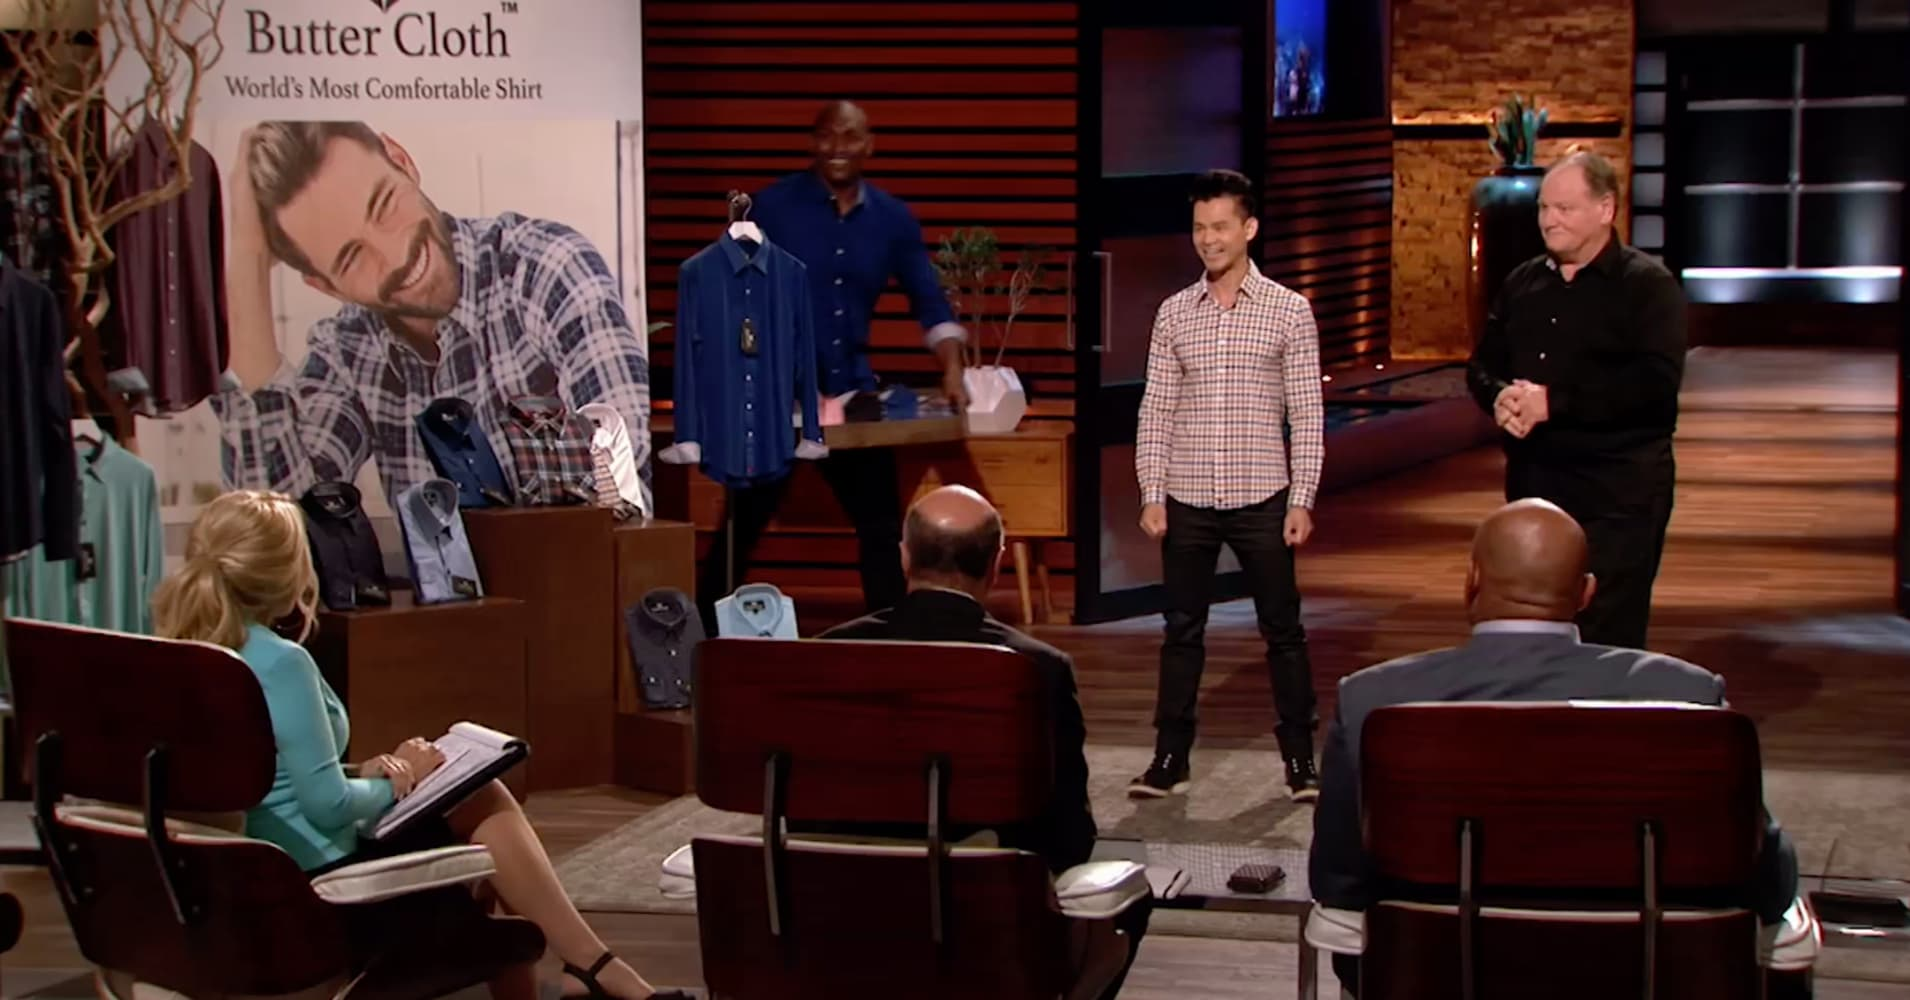 Founder of comfortable menswear brand talks surge in sales after 'Shark Tank' pitch